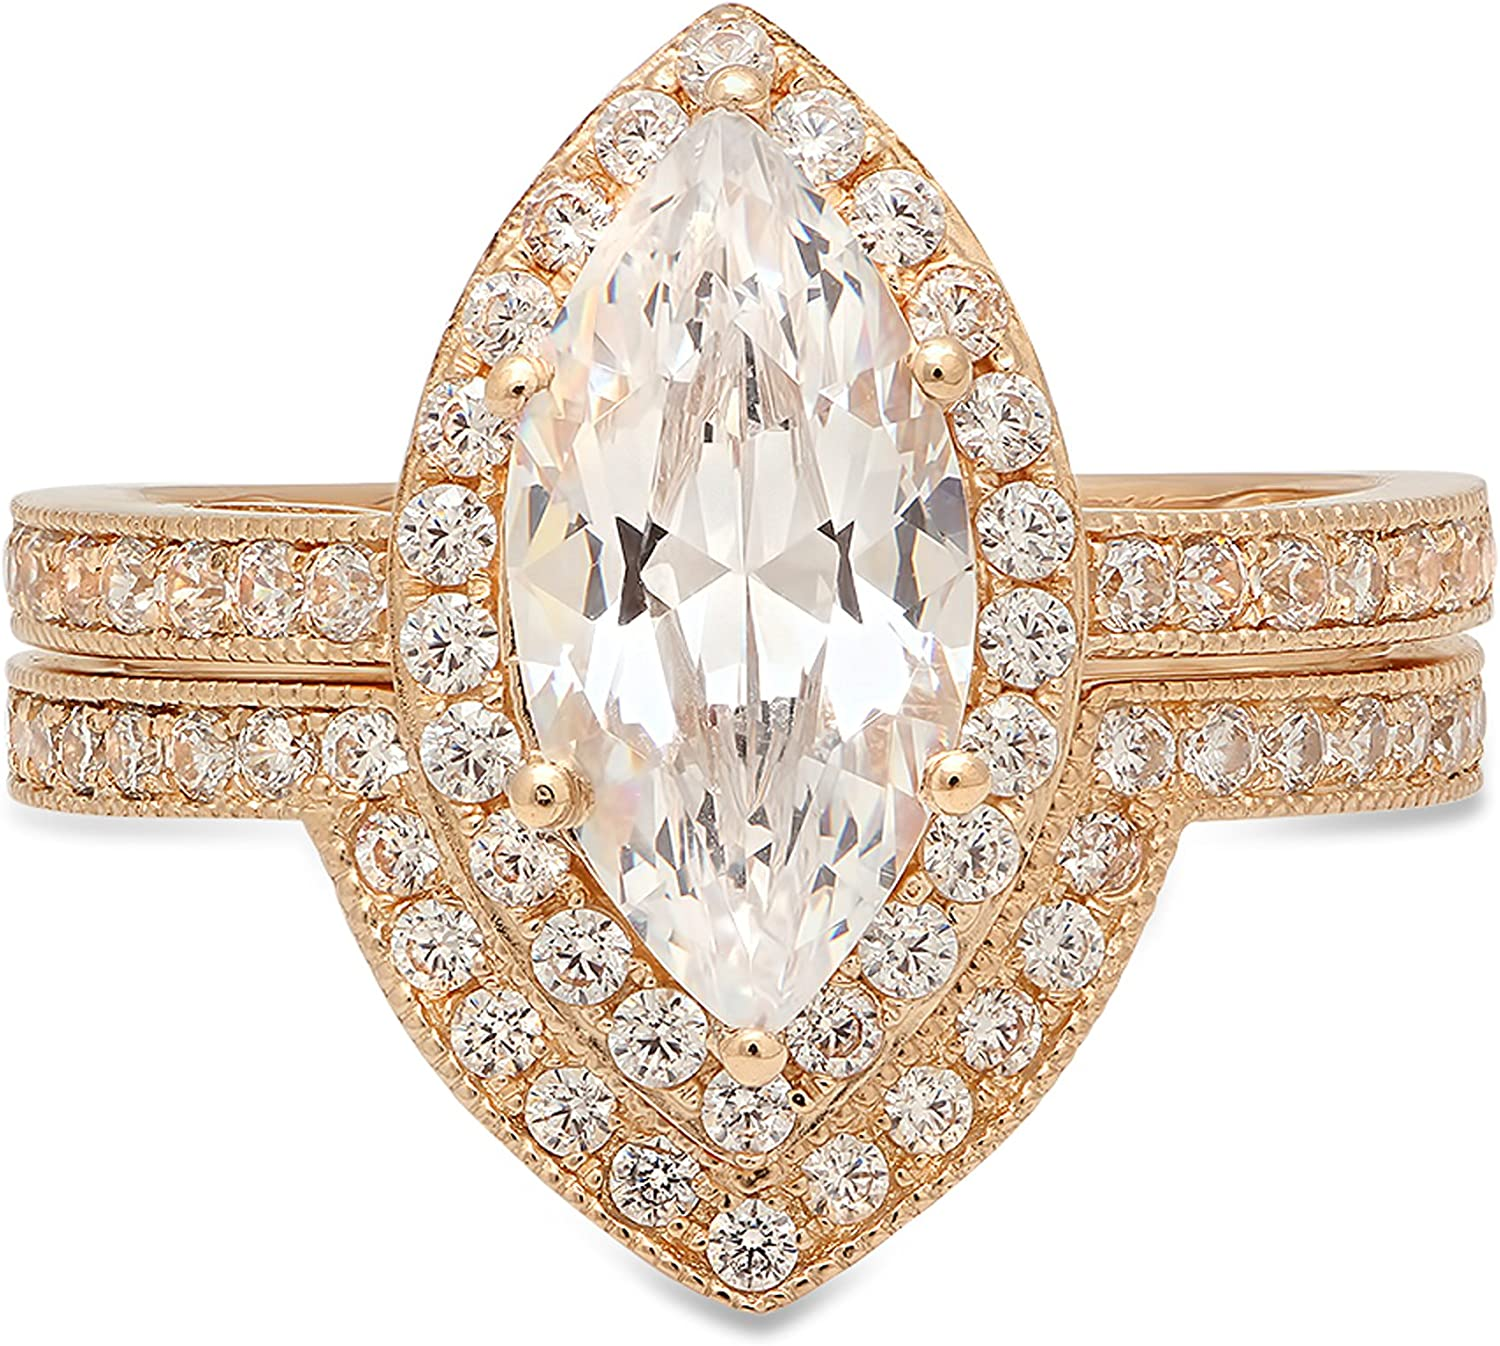 2.16ct Marquise Round Cut Pave Halo Solitaire Accent Genuine Moissanite & Simulated Diamond Engagement Promise Statement Anniversary Bridal Wedding Ring Band set Solid 14k Yellow Gold